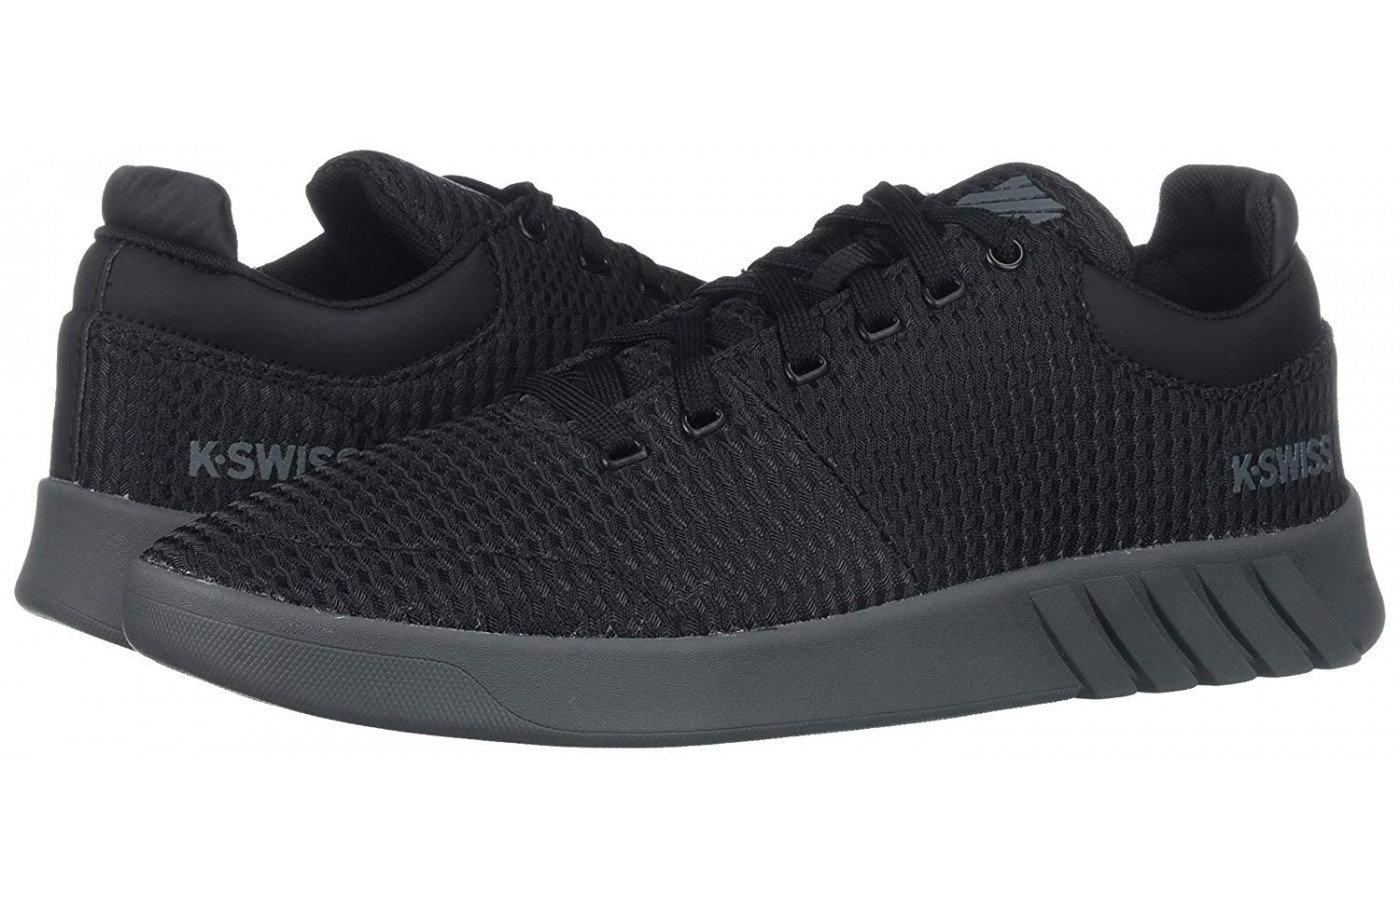 K-Swiss Aero Trainer T Reviewed for